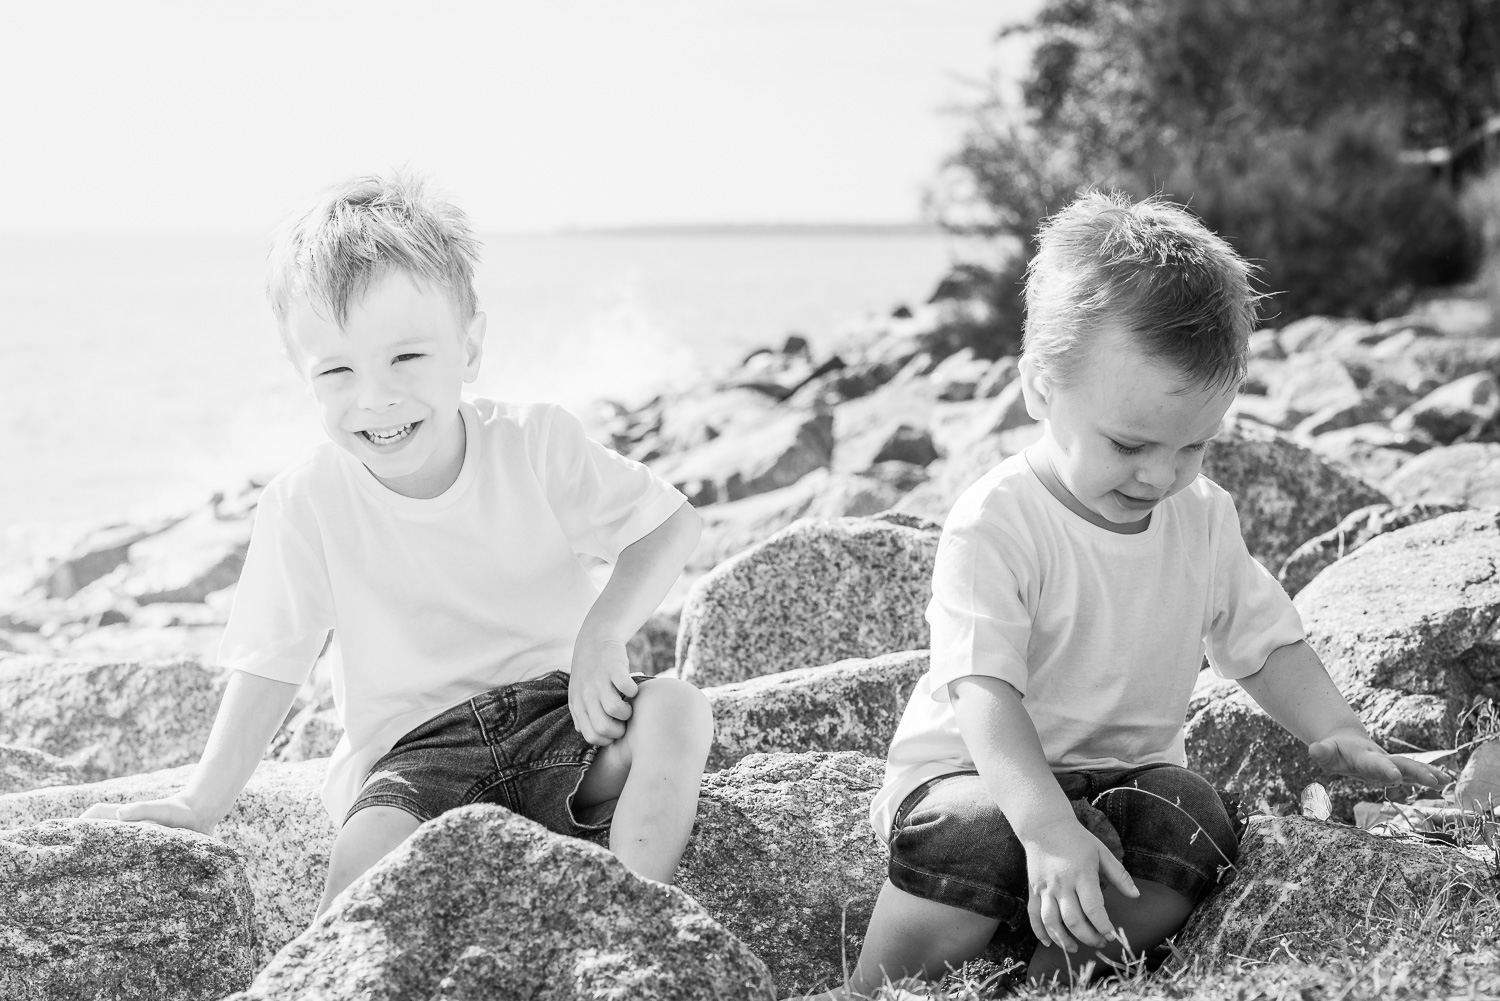 Black and white candid children playing at the beach at Shorncliff  Stuart C Photography  Caboolture Outdoor Portrait Photographer  Caboolture outdoor family photographer, Caboolture outdoor family photography, Caboolture outdoor family photos, family photos Caboolture, family photographer Caboolture, family photography Caboolture, outdoor family photographer Caboolture, outdoor family photography Caboolture, outdoor family photos Caboolture, Caboolture photographer